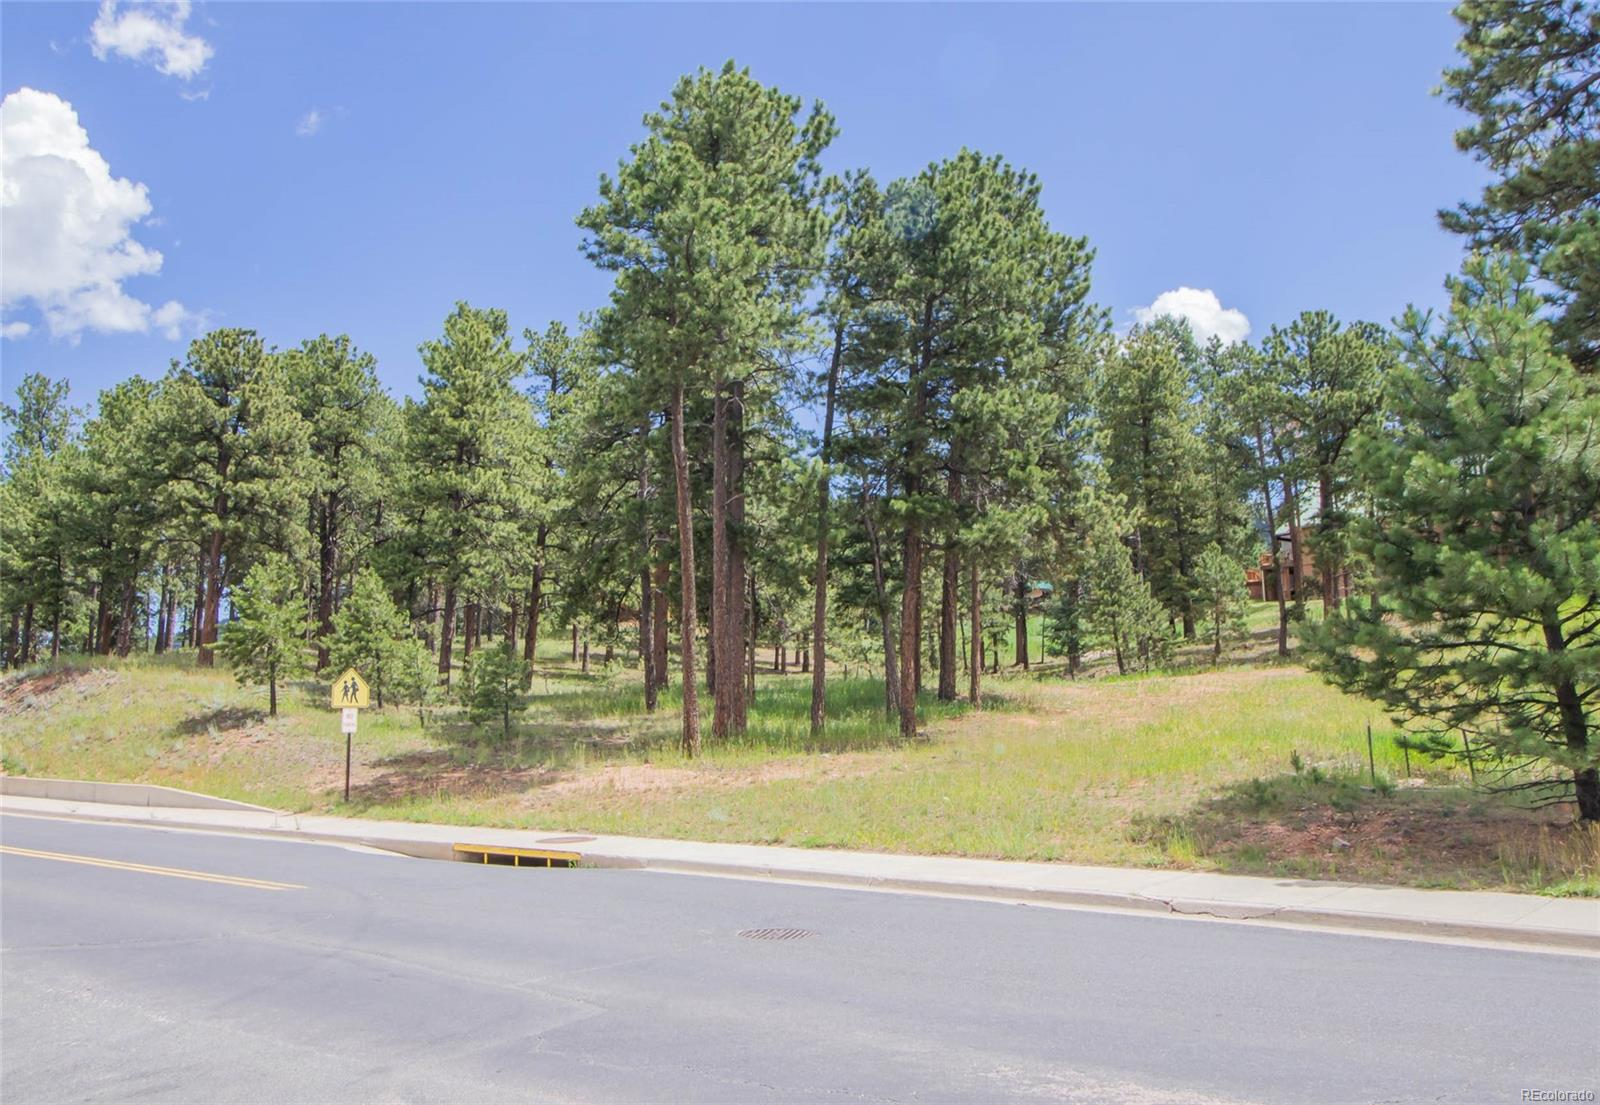 0 S Baldwin Street, Woodland Park, CO 80863 - Woodland Park, CO real estate listing